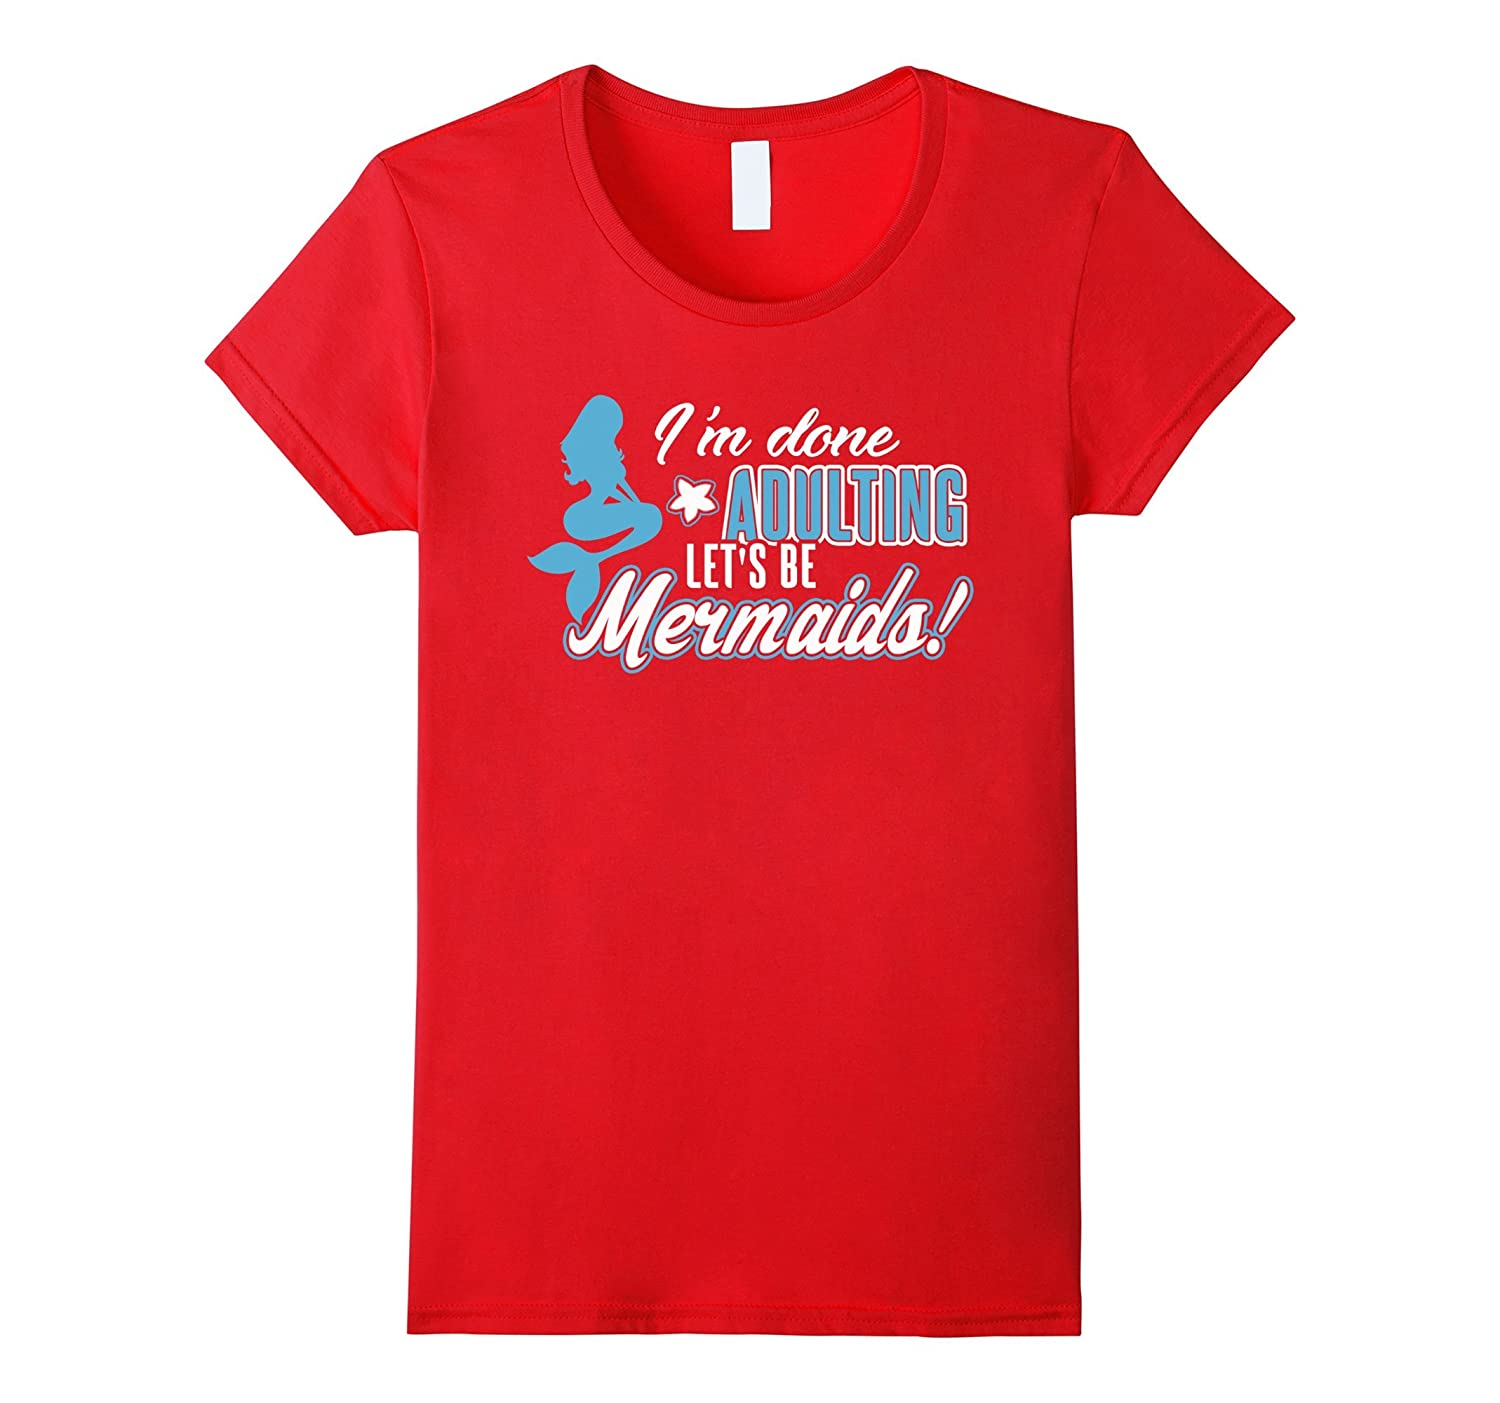 I'm Done Adulting Let's Be Mermaids Shirt Funny gift shirt